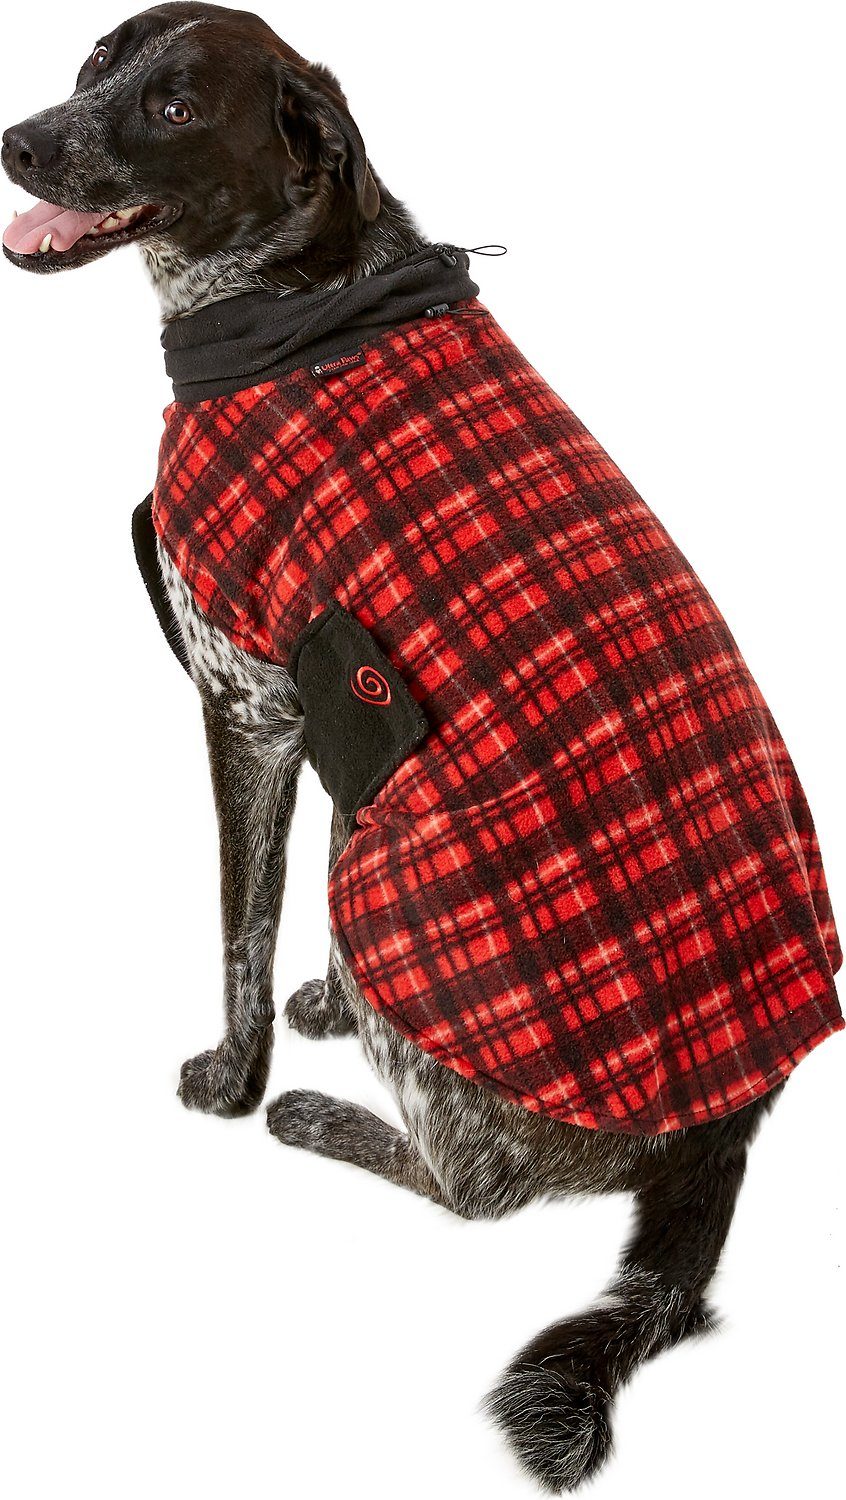 33 Ultra Cozy Bedroom Decorating Ideas For Winter Warmth: Ultra Paws Red Plaid Cozy Dog Coat, X-Large